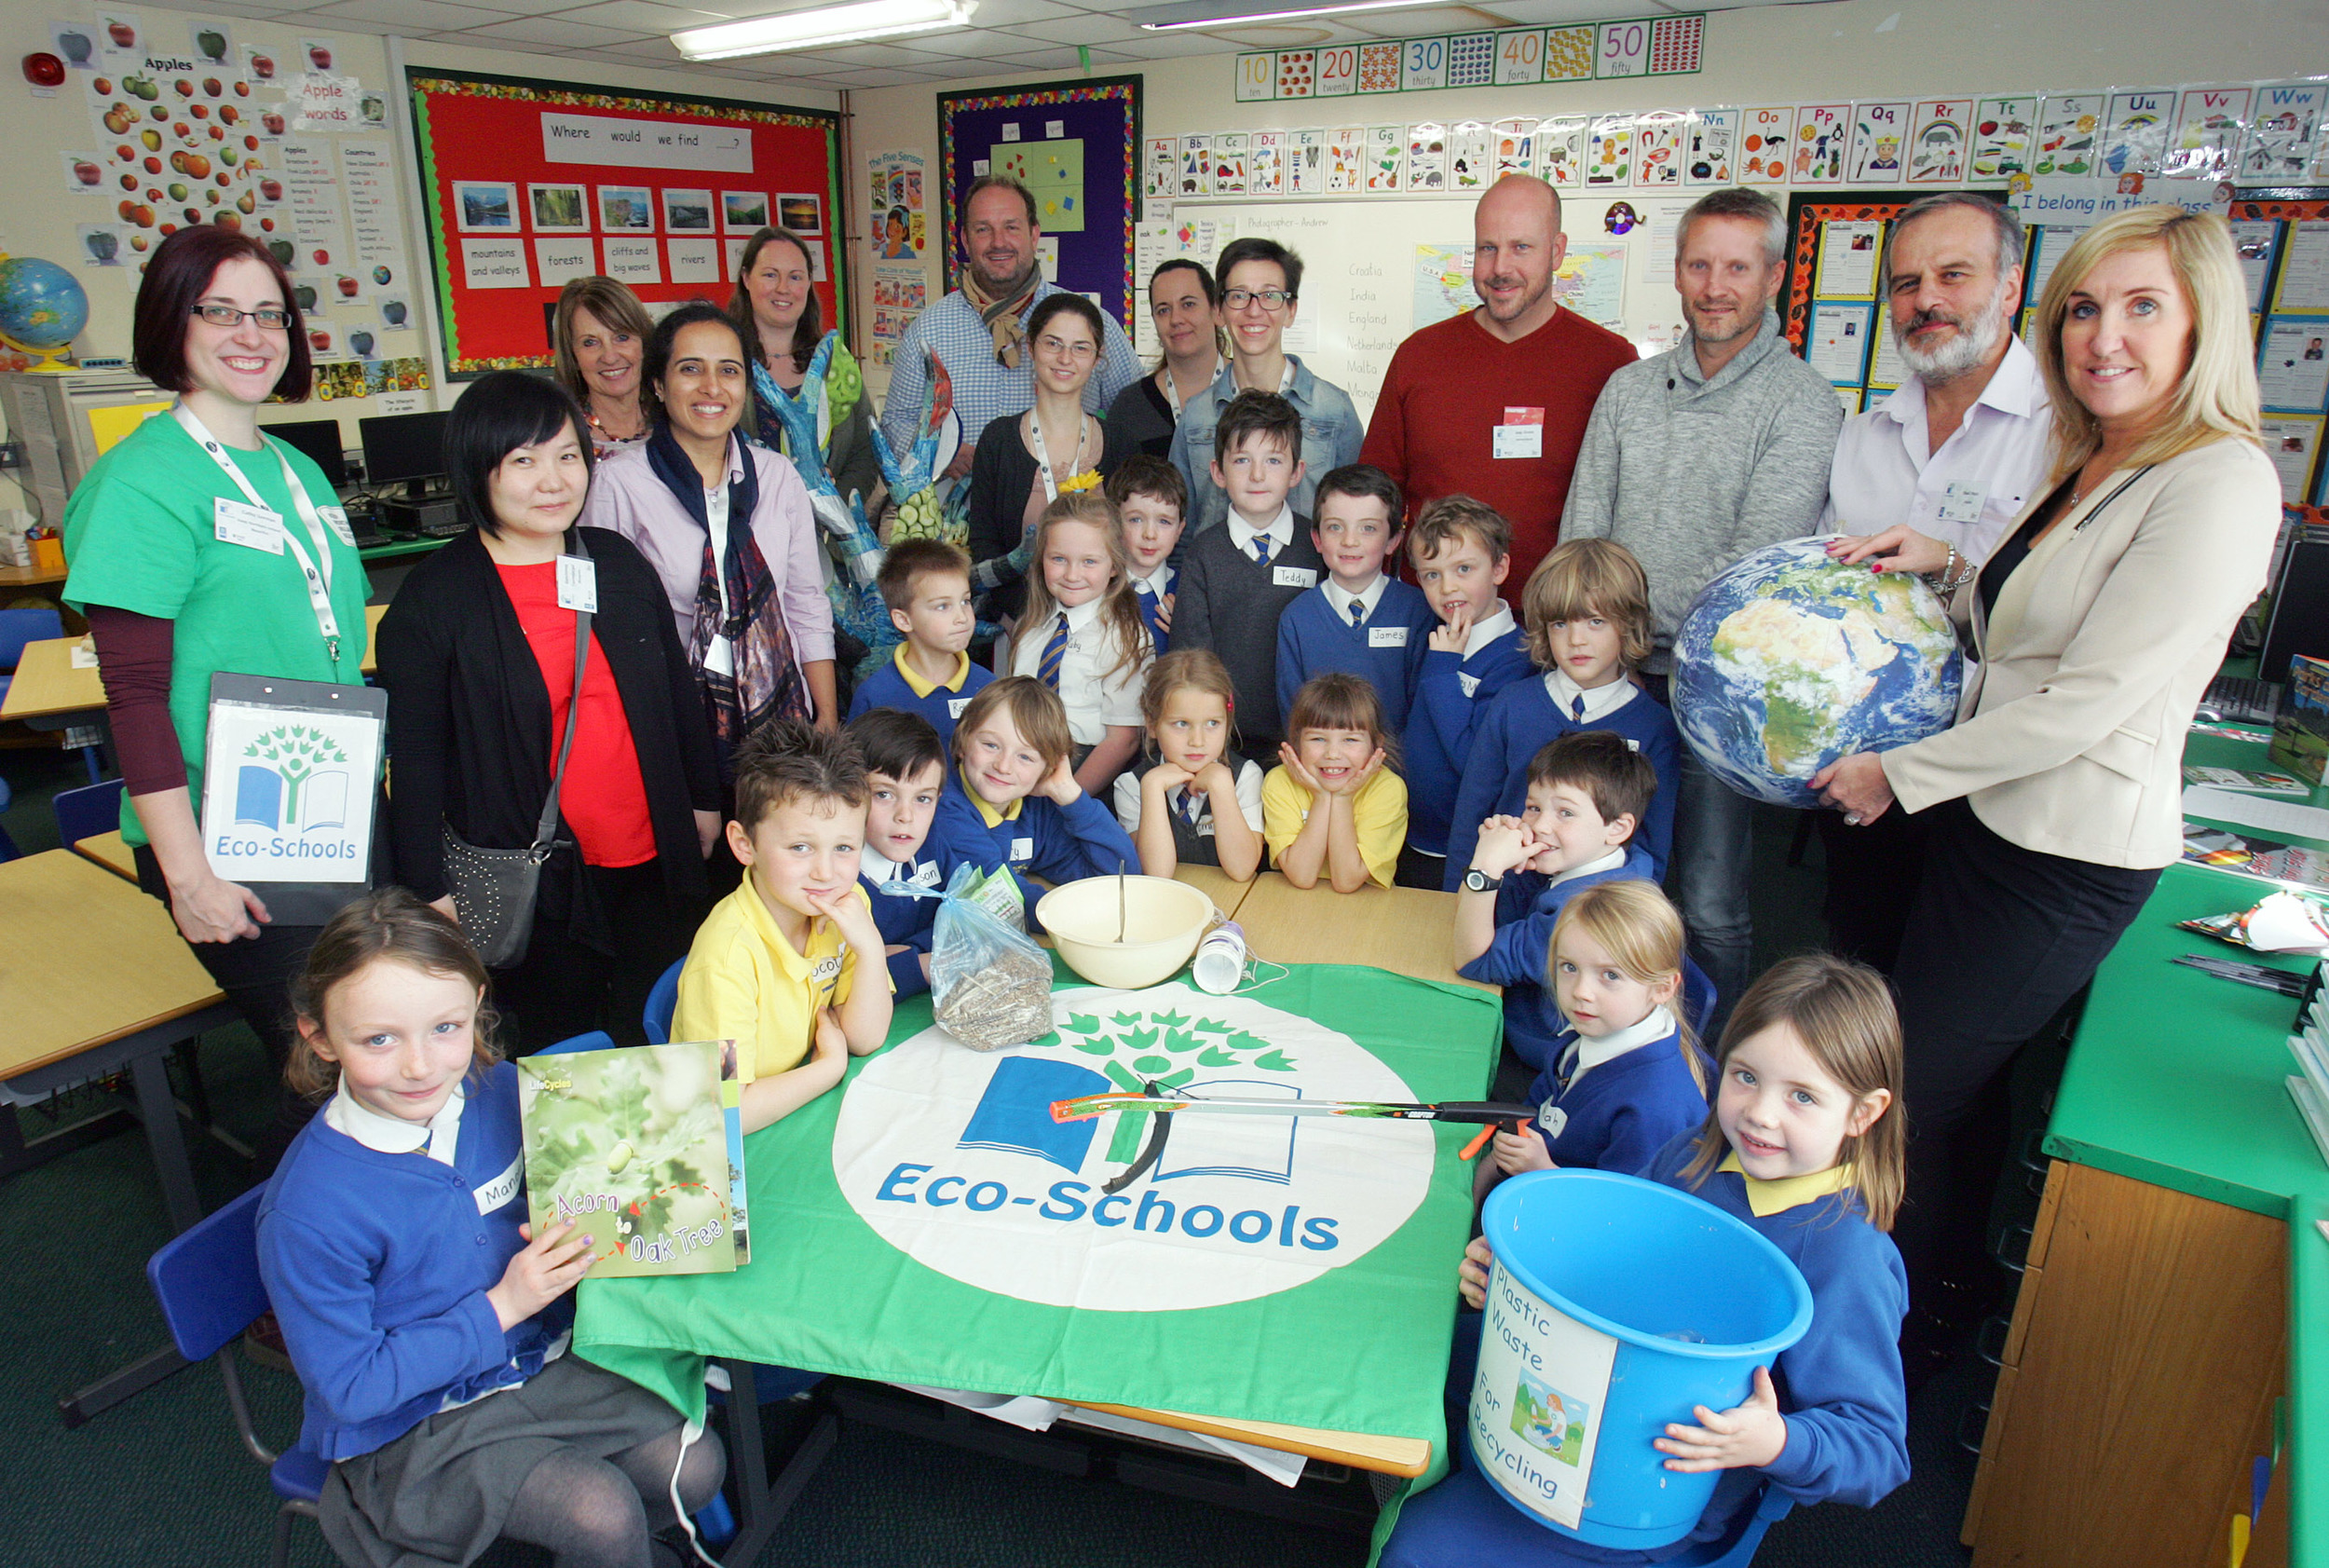 The international visitors enjoyed a trip to local Eco-Schools showcasing best practice including Belmont Primary School in Belfast who impressed with their knowledge of all things Eco.